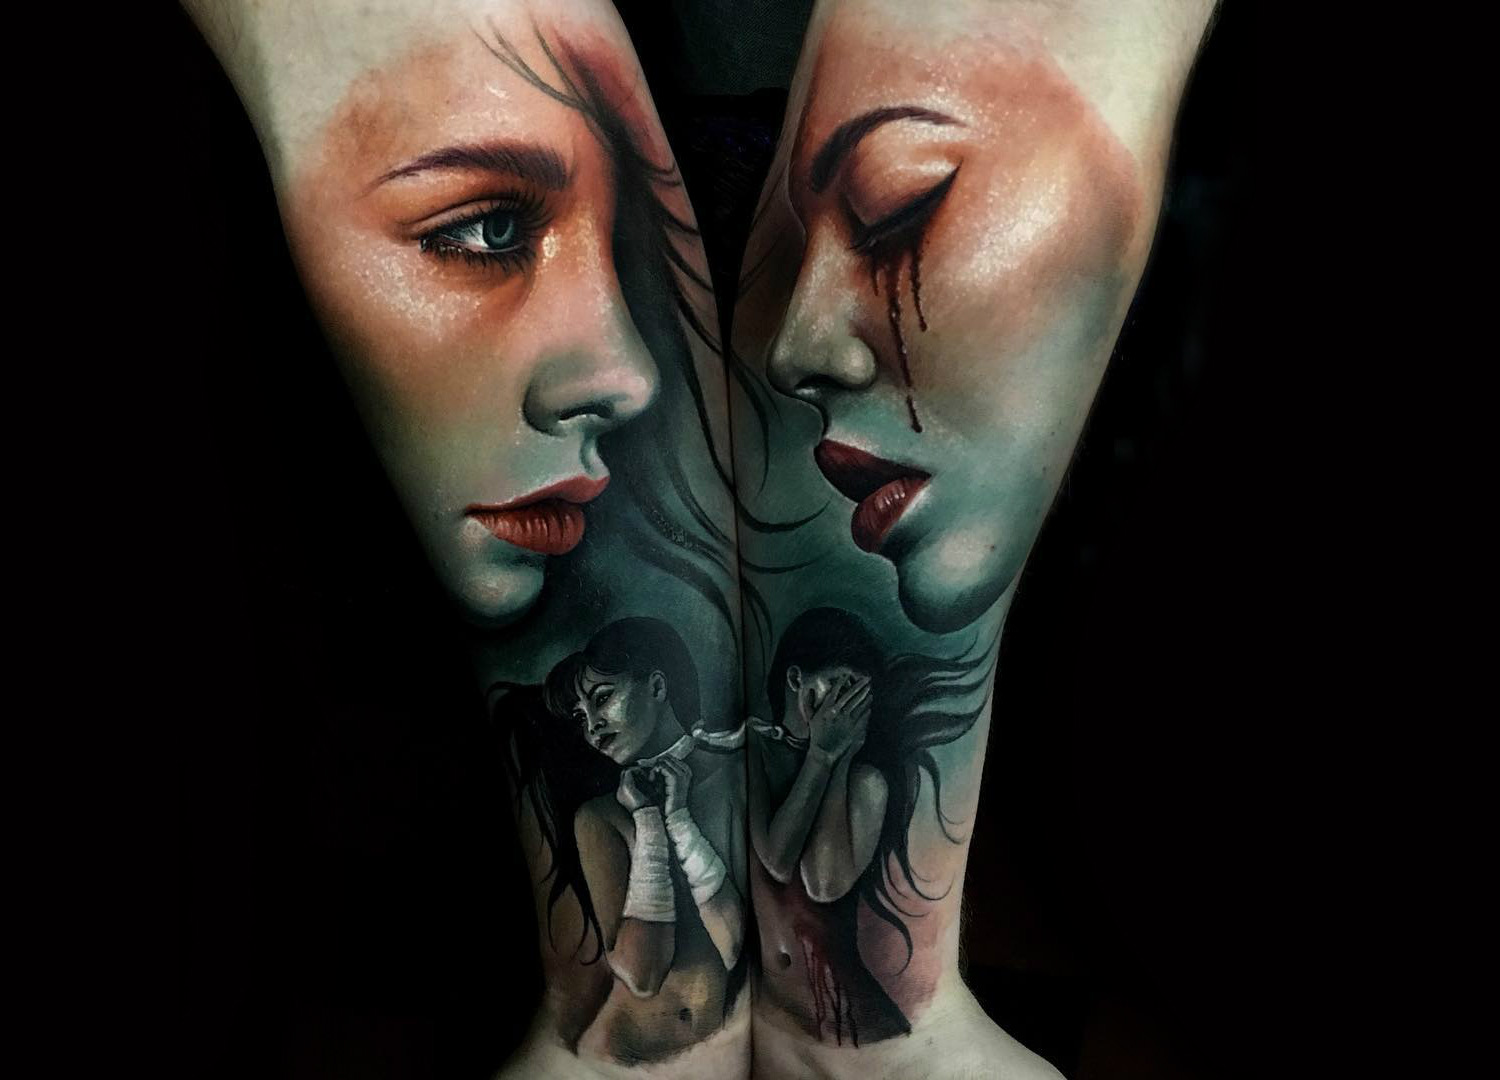 Double portrait tattoos by Sam Barber